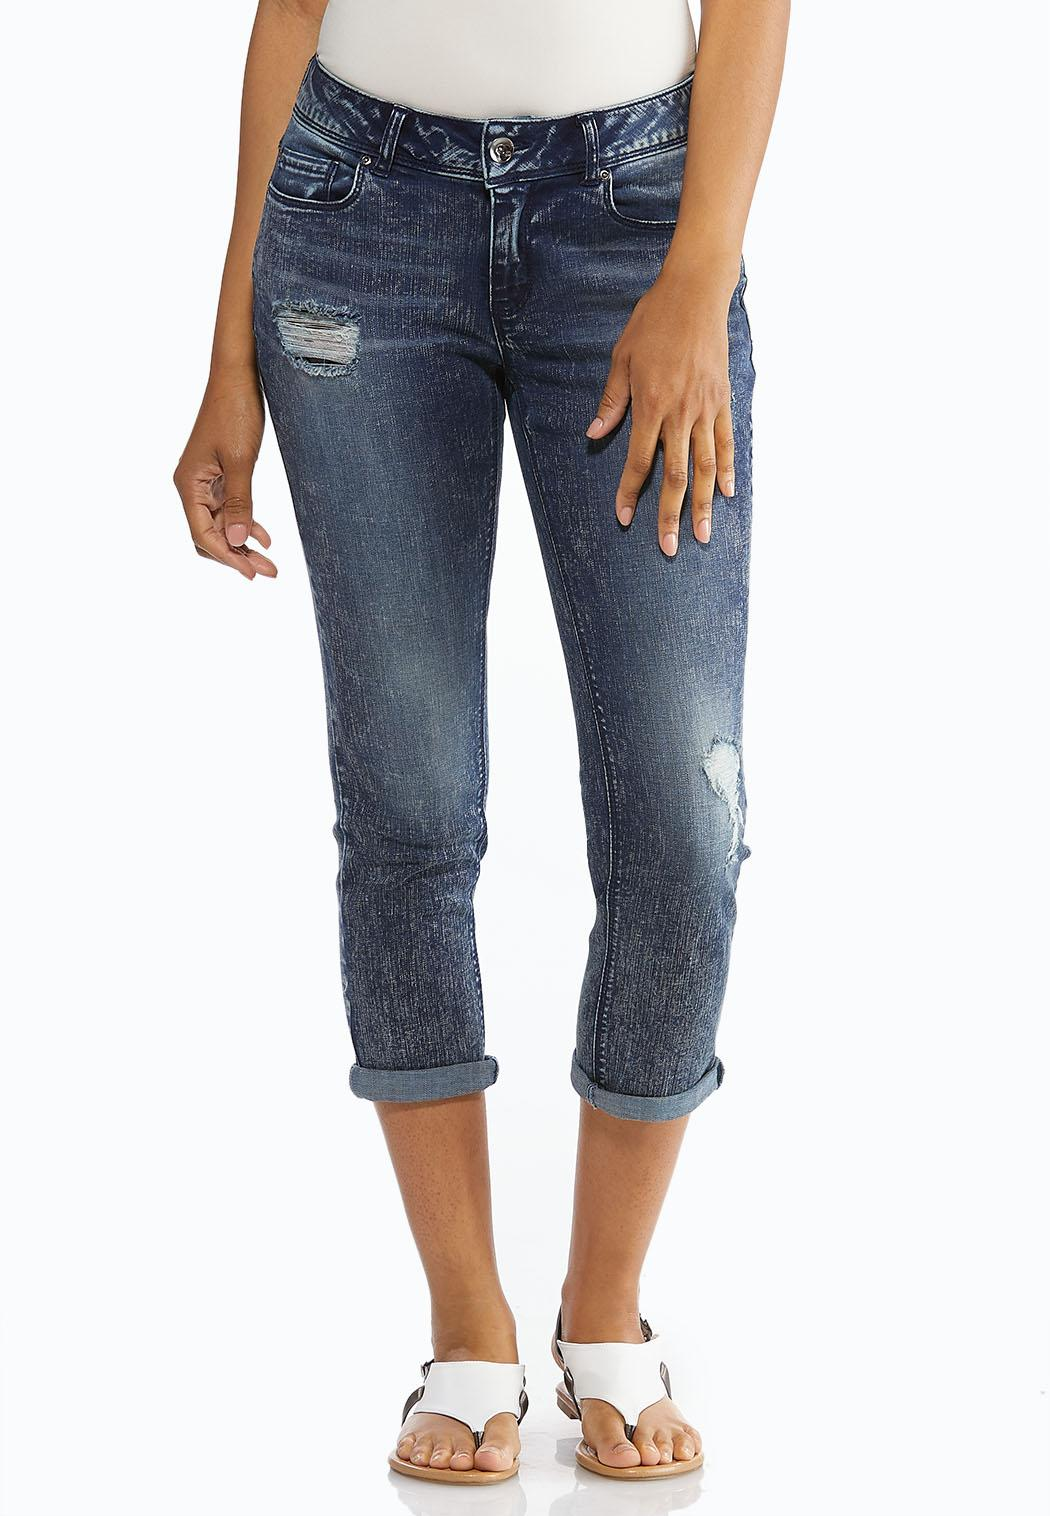 Distressed Reversed Wash Jeans